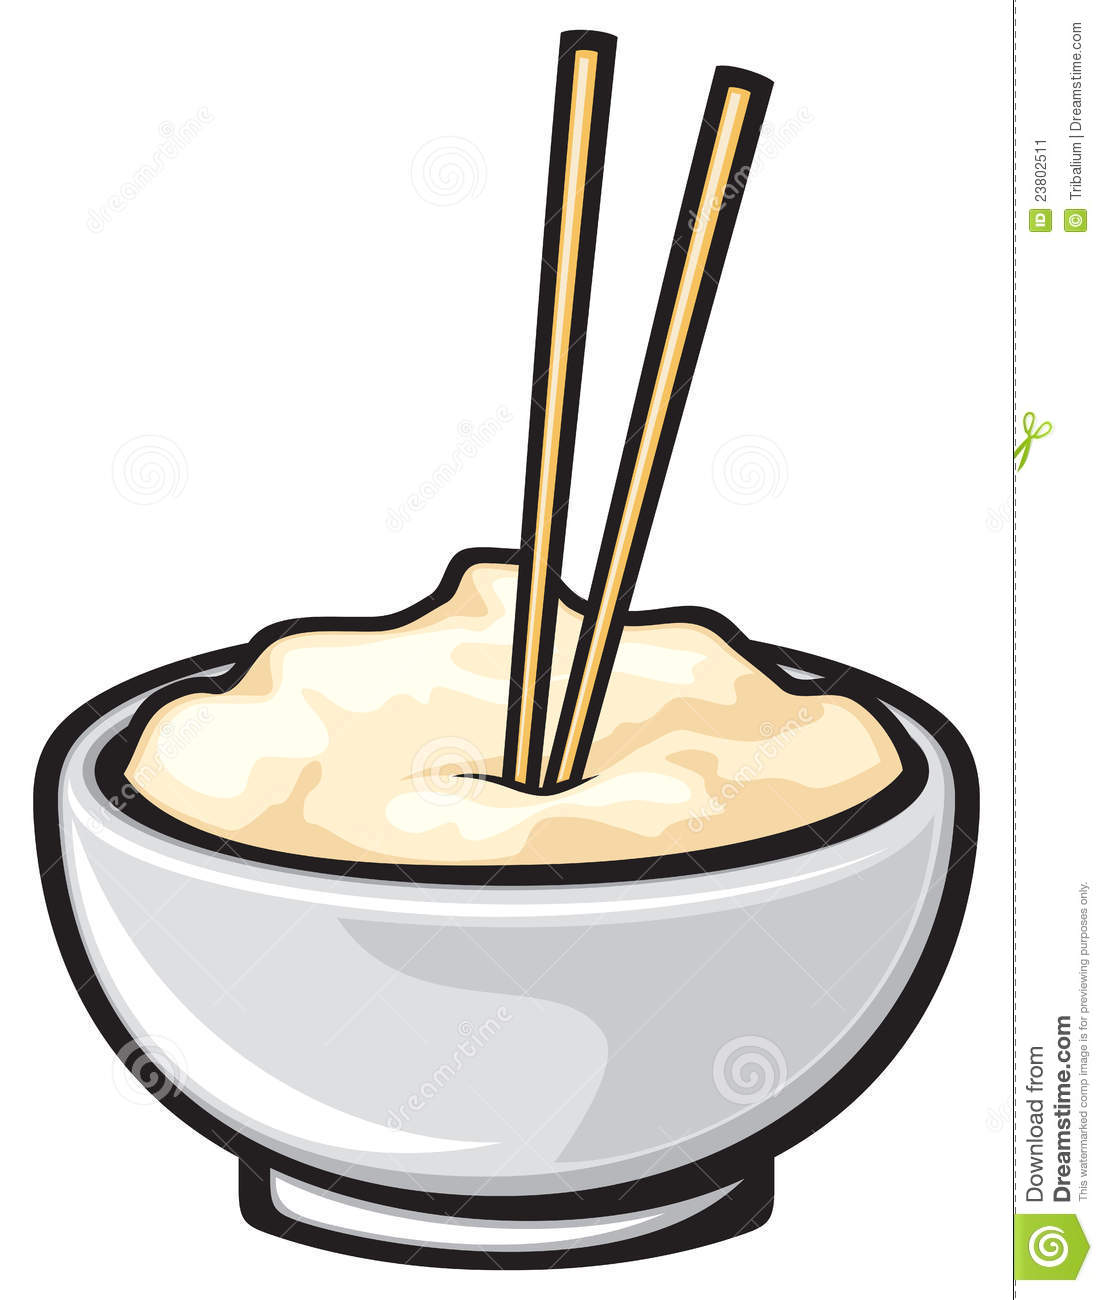 chinese food and chopsticks stock image image 23802511 free lunch clipart images lunch clip art free small